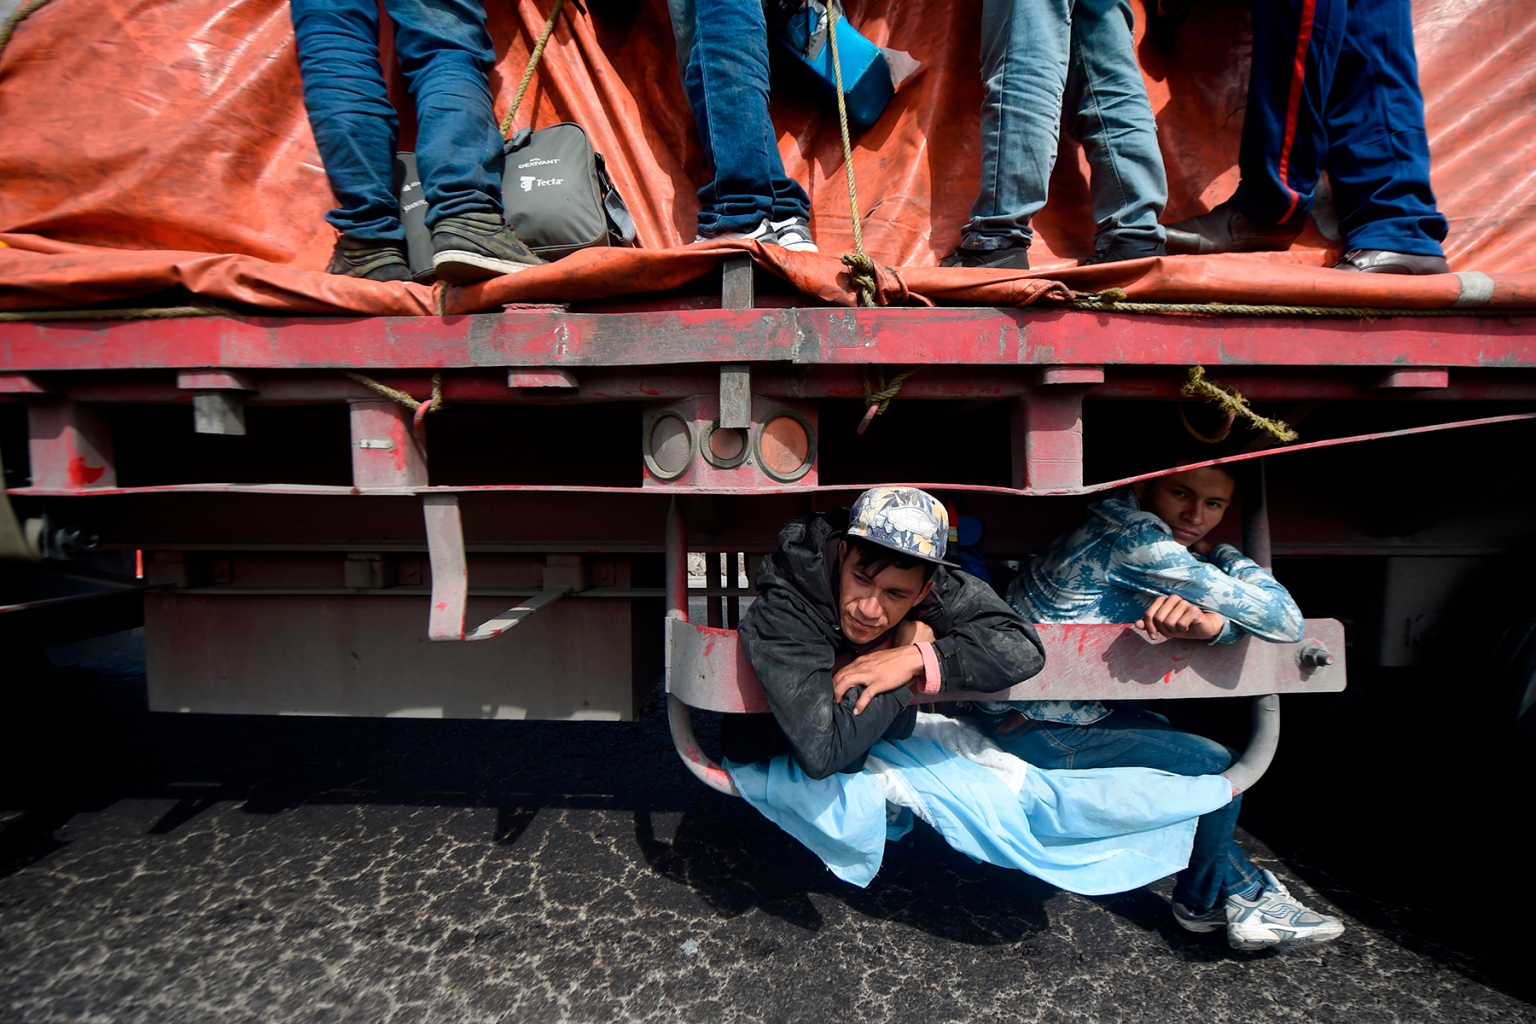 Central American migrants moving towards the United States ride aboard a truck from La Piedad to Vista Hermosa, Mexico, as they continue their trek north on Nov. 12. ALFREDO ESTRELLA/AFP/Getty Images